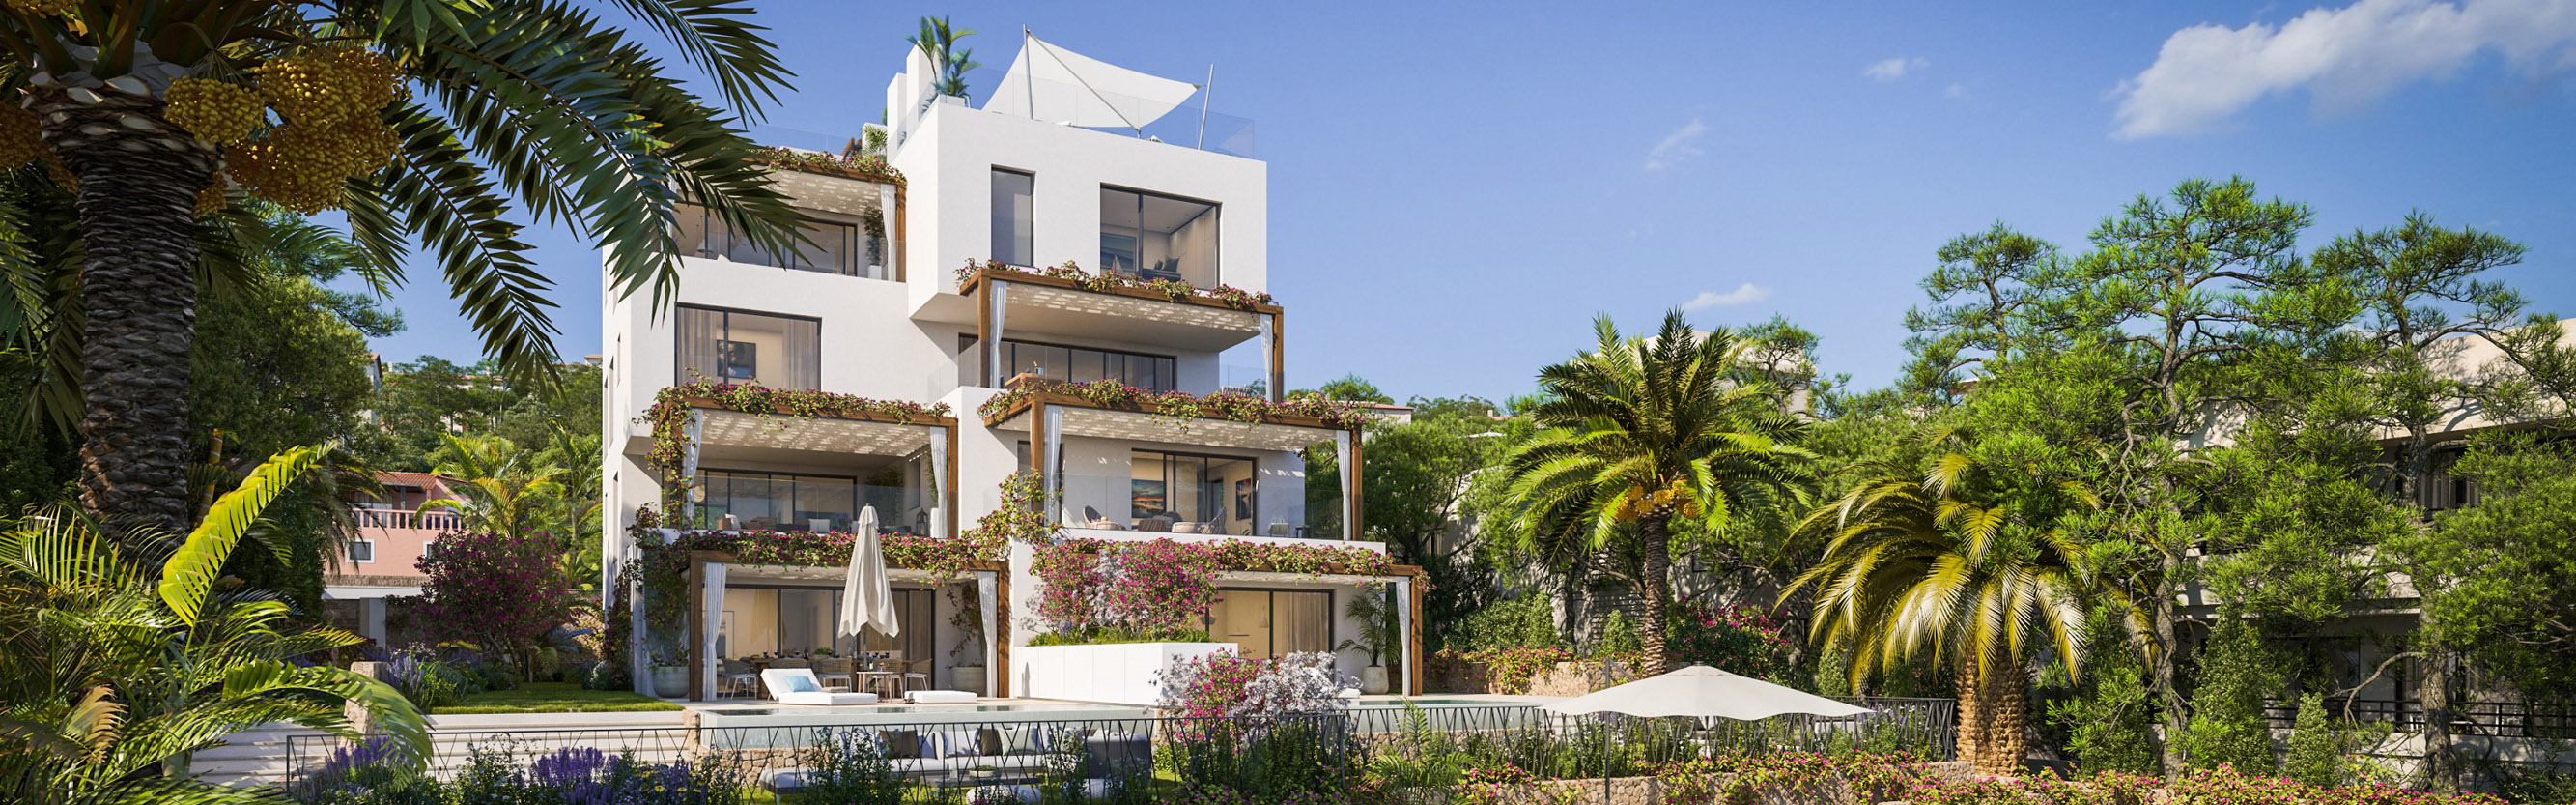 Balearen, Spanien - ROOF - New build apartments near Palma, Mallorca